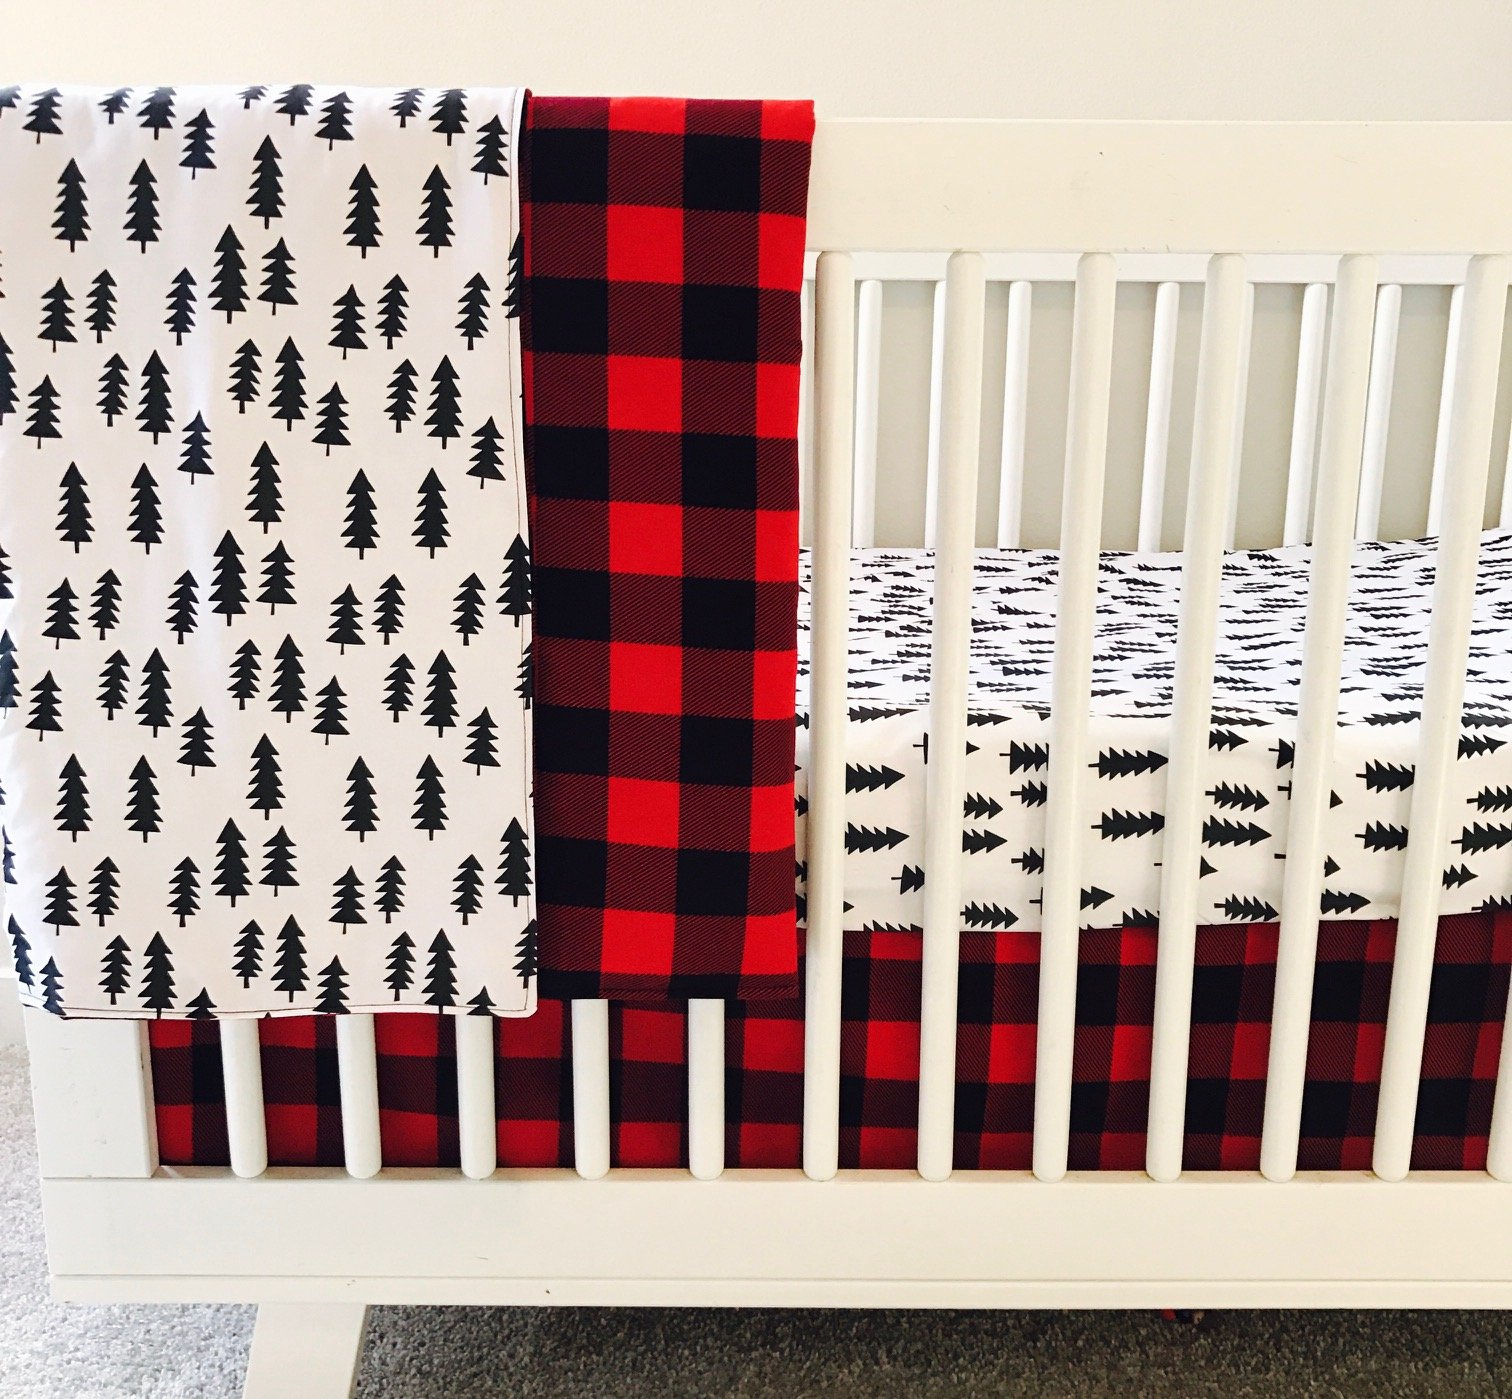 AllTot Crib Bedding Set- Forest Adventure - 3 Piece Boy crib bedding set in Red and Black Buffalo Plaid Pine Trees - Handmade in The USA